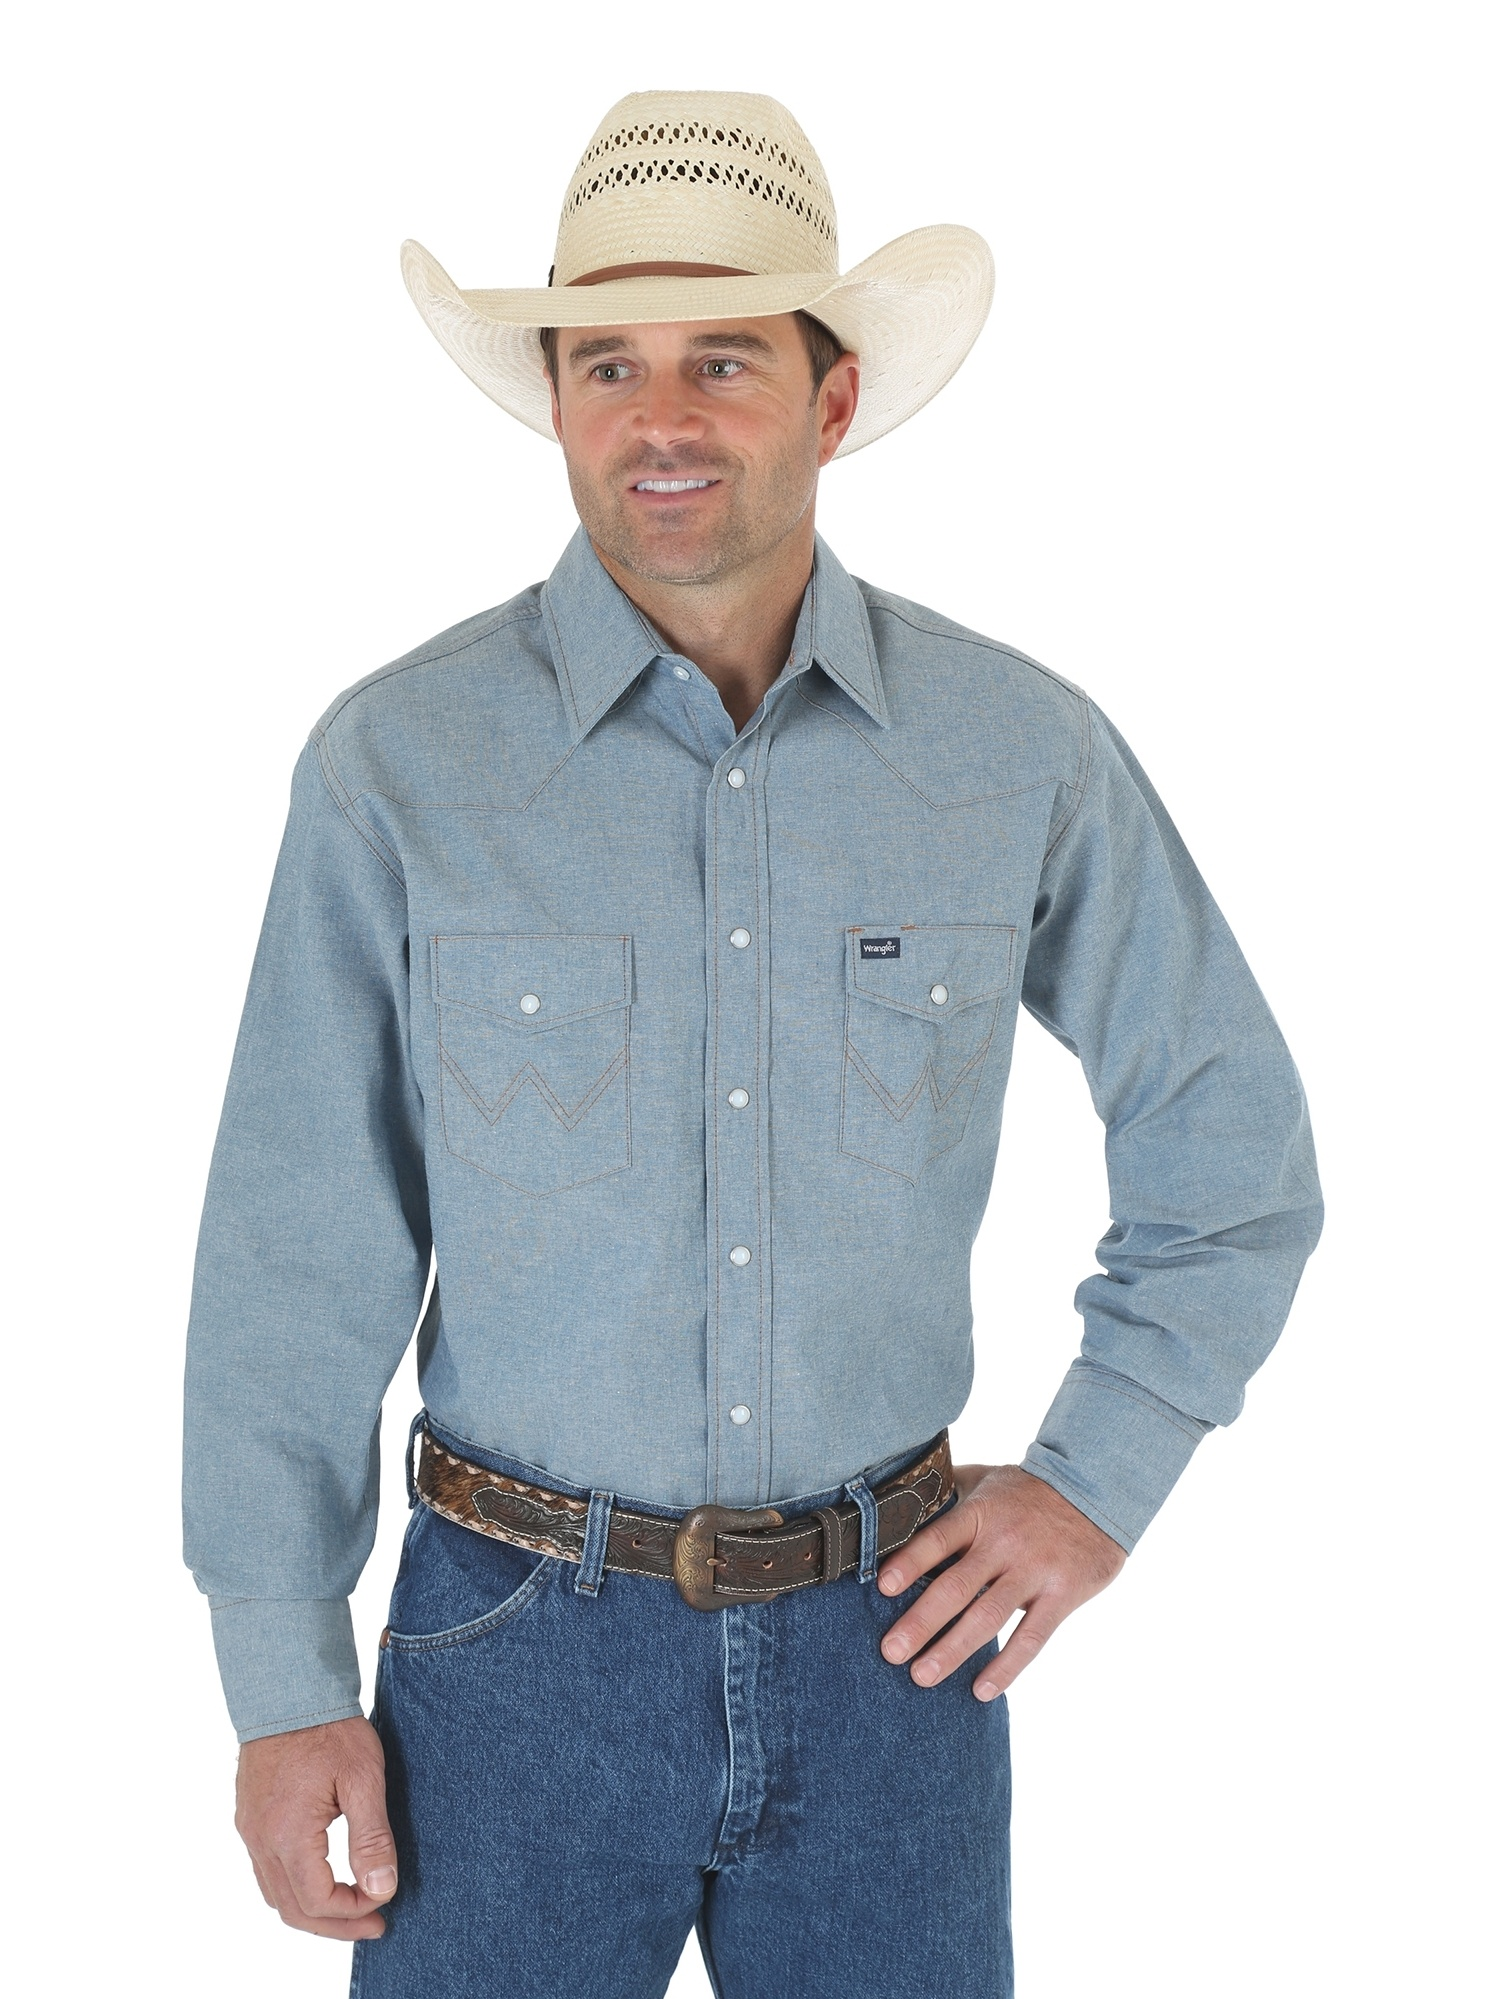 Wrangler Mens Cowboy Cut Long Sleeve Work Shirt Chambray - Walmart.com